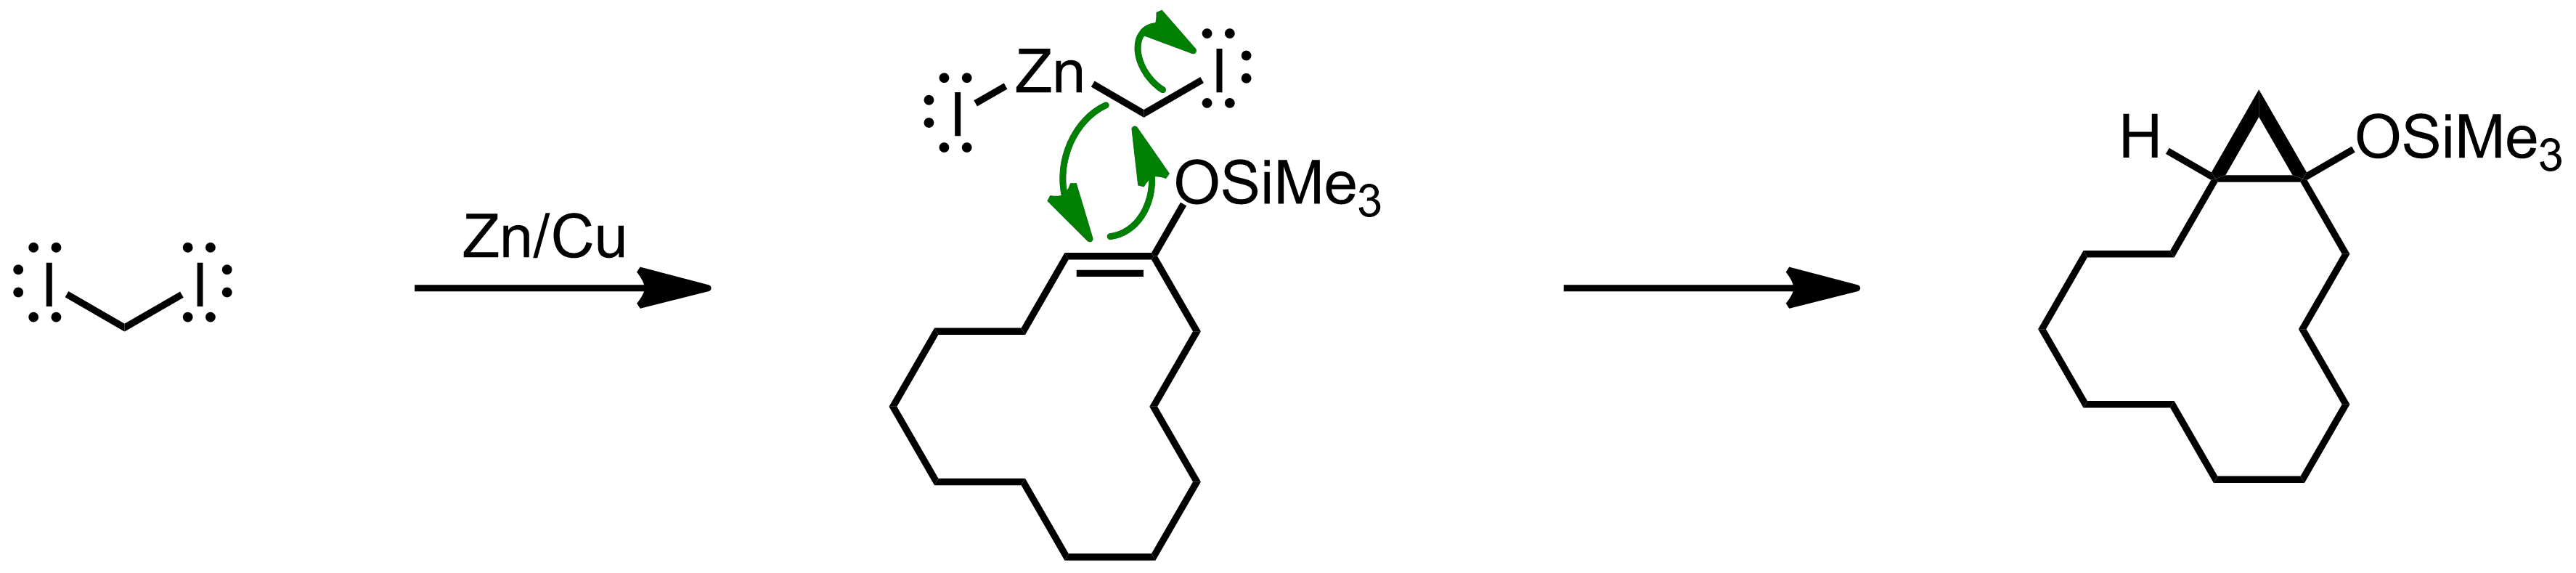 Mechanism of the Simmons-Smith Reaction